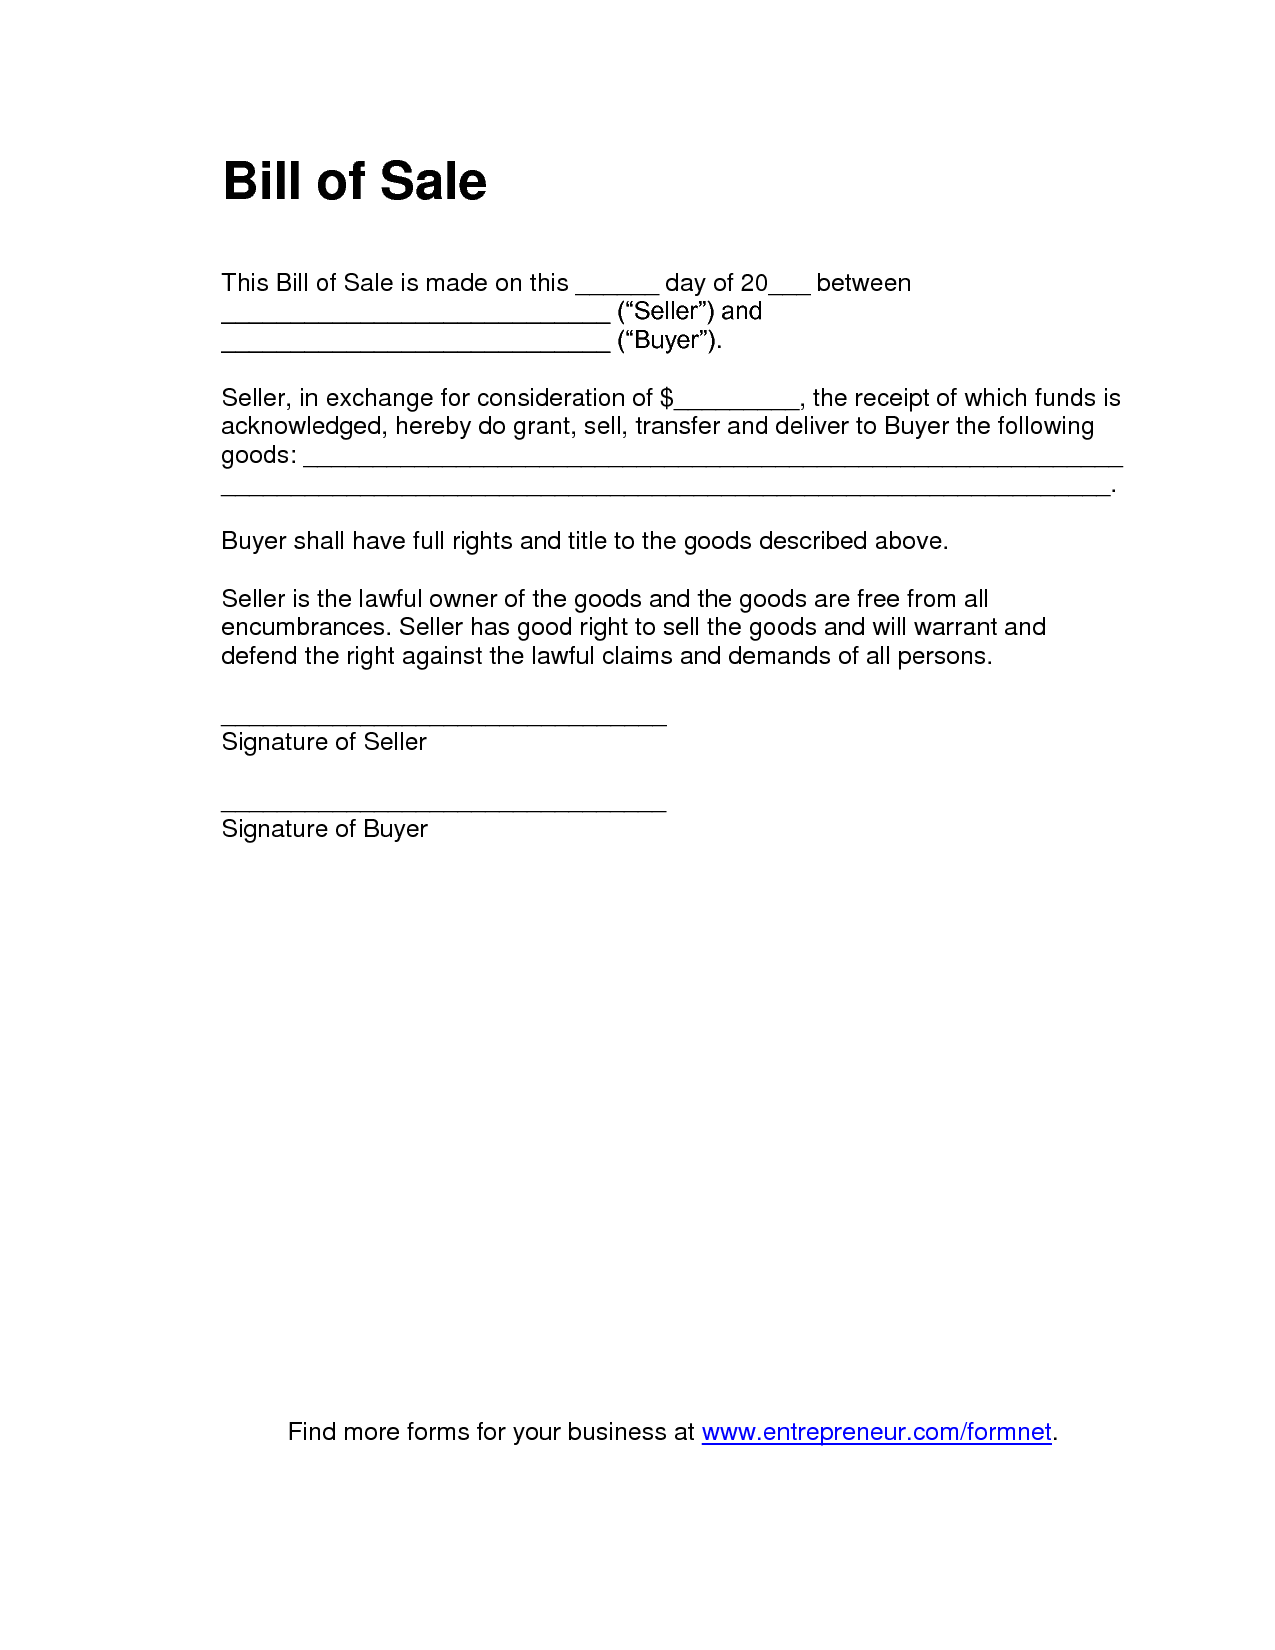 Examples Of Bill Of Sale for Cars and Printable Sample Tractor Bill Of Sale form Laywers Template